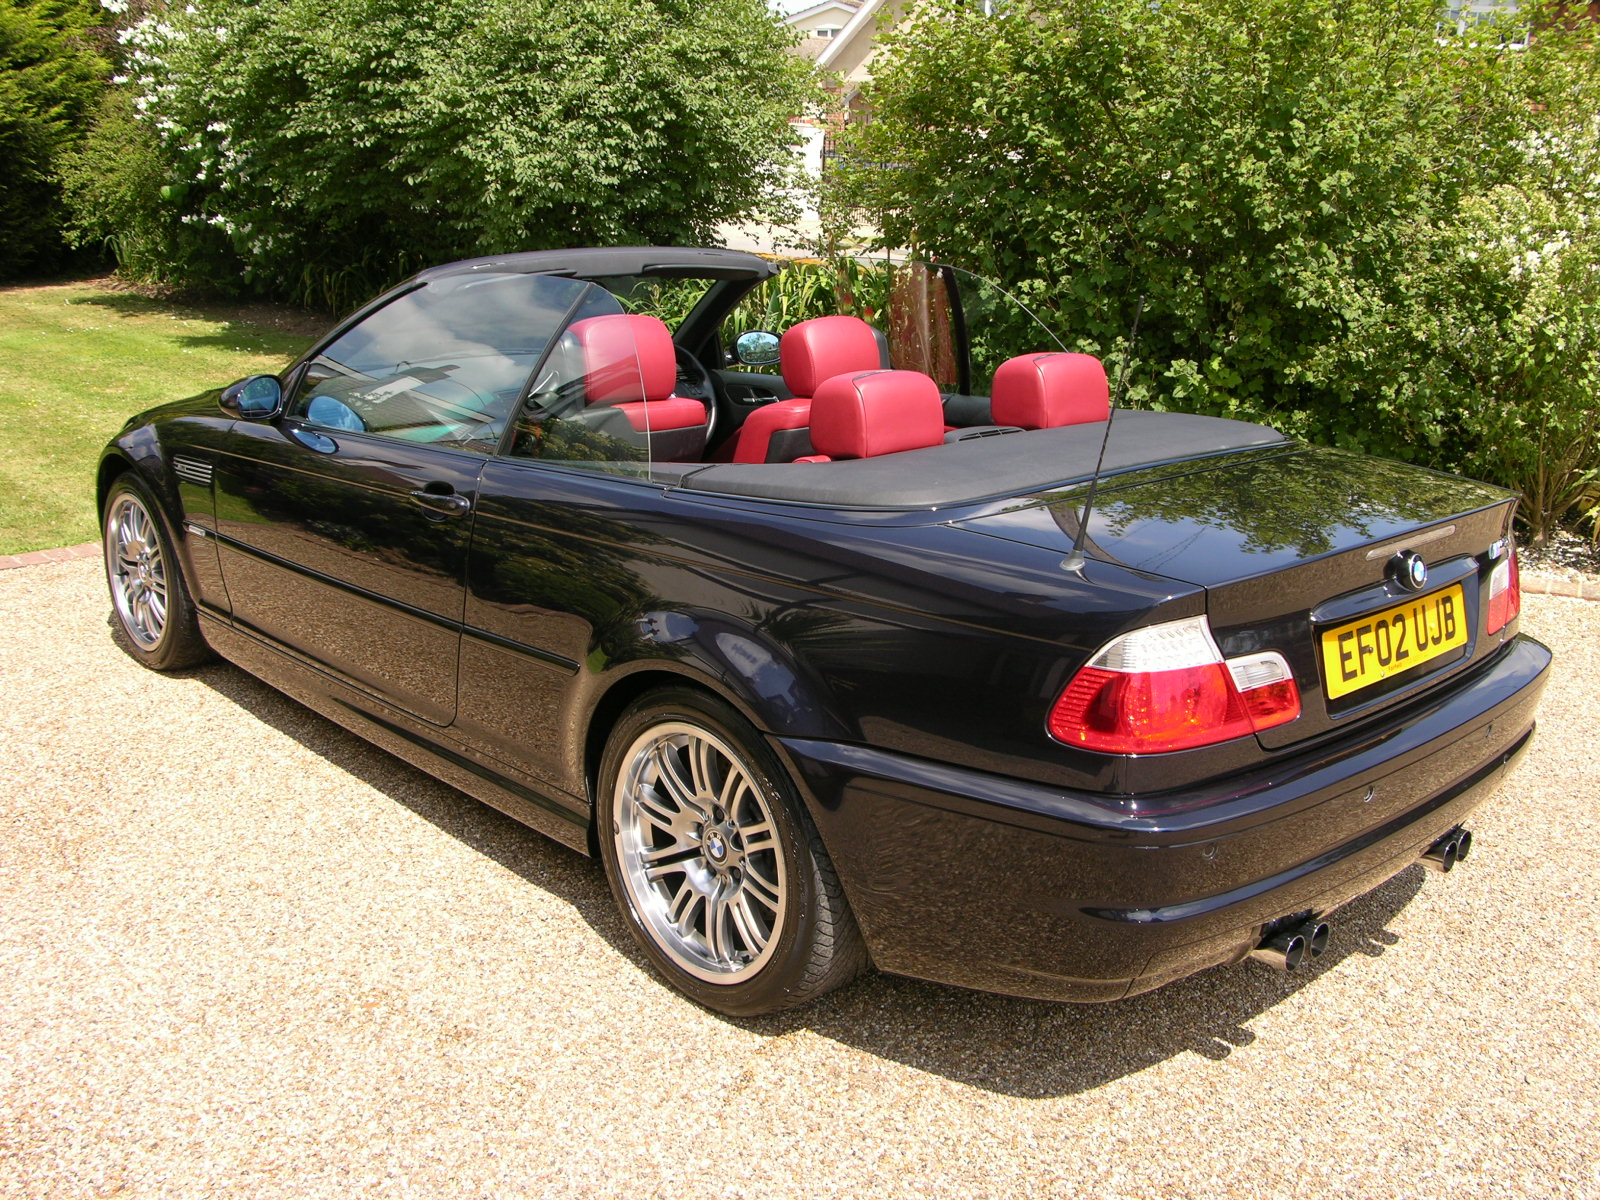 file bmw m3 e46 convertible flickr the car spy 8 jpg wikimedia commons. Black Bedroom Furniture Sets. Home Design Ideas